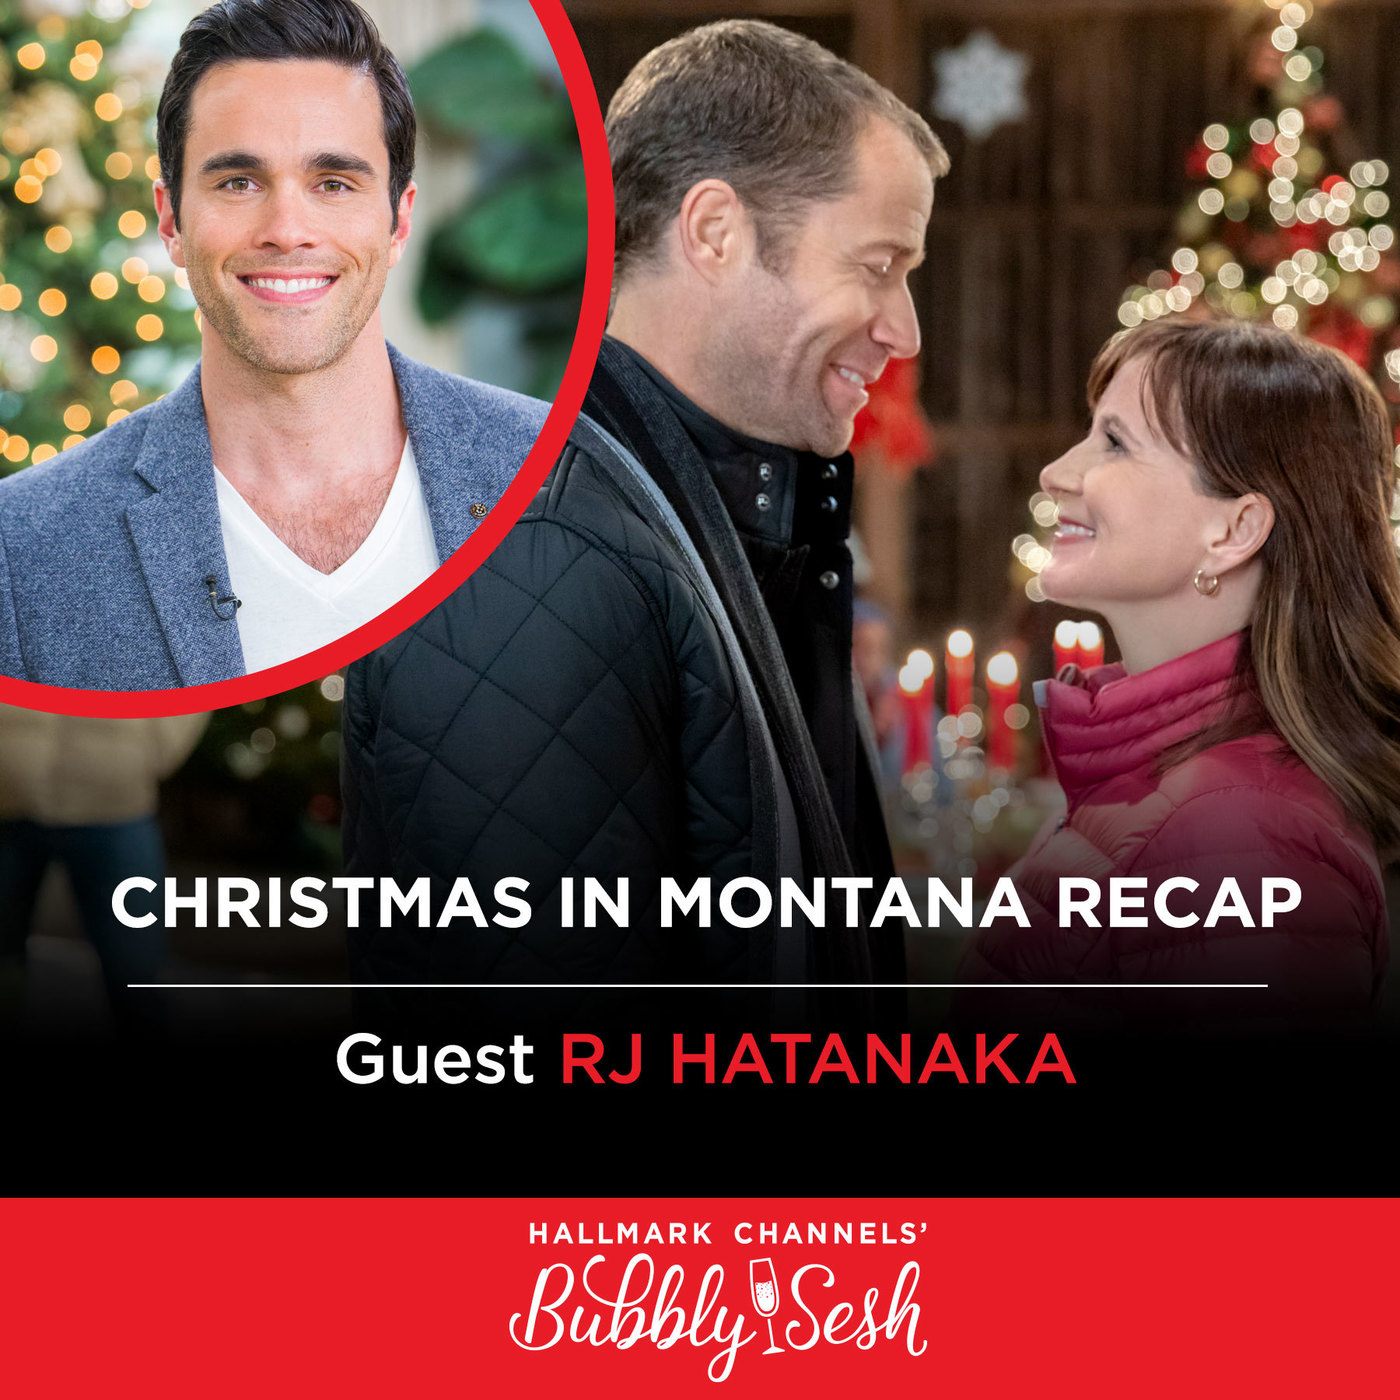 Christmas in Montana Recap with Ryan-James Hatanaka